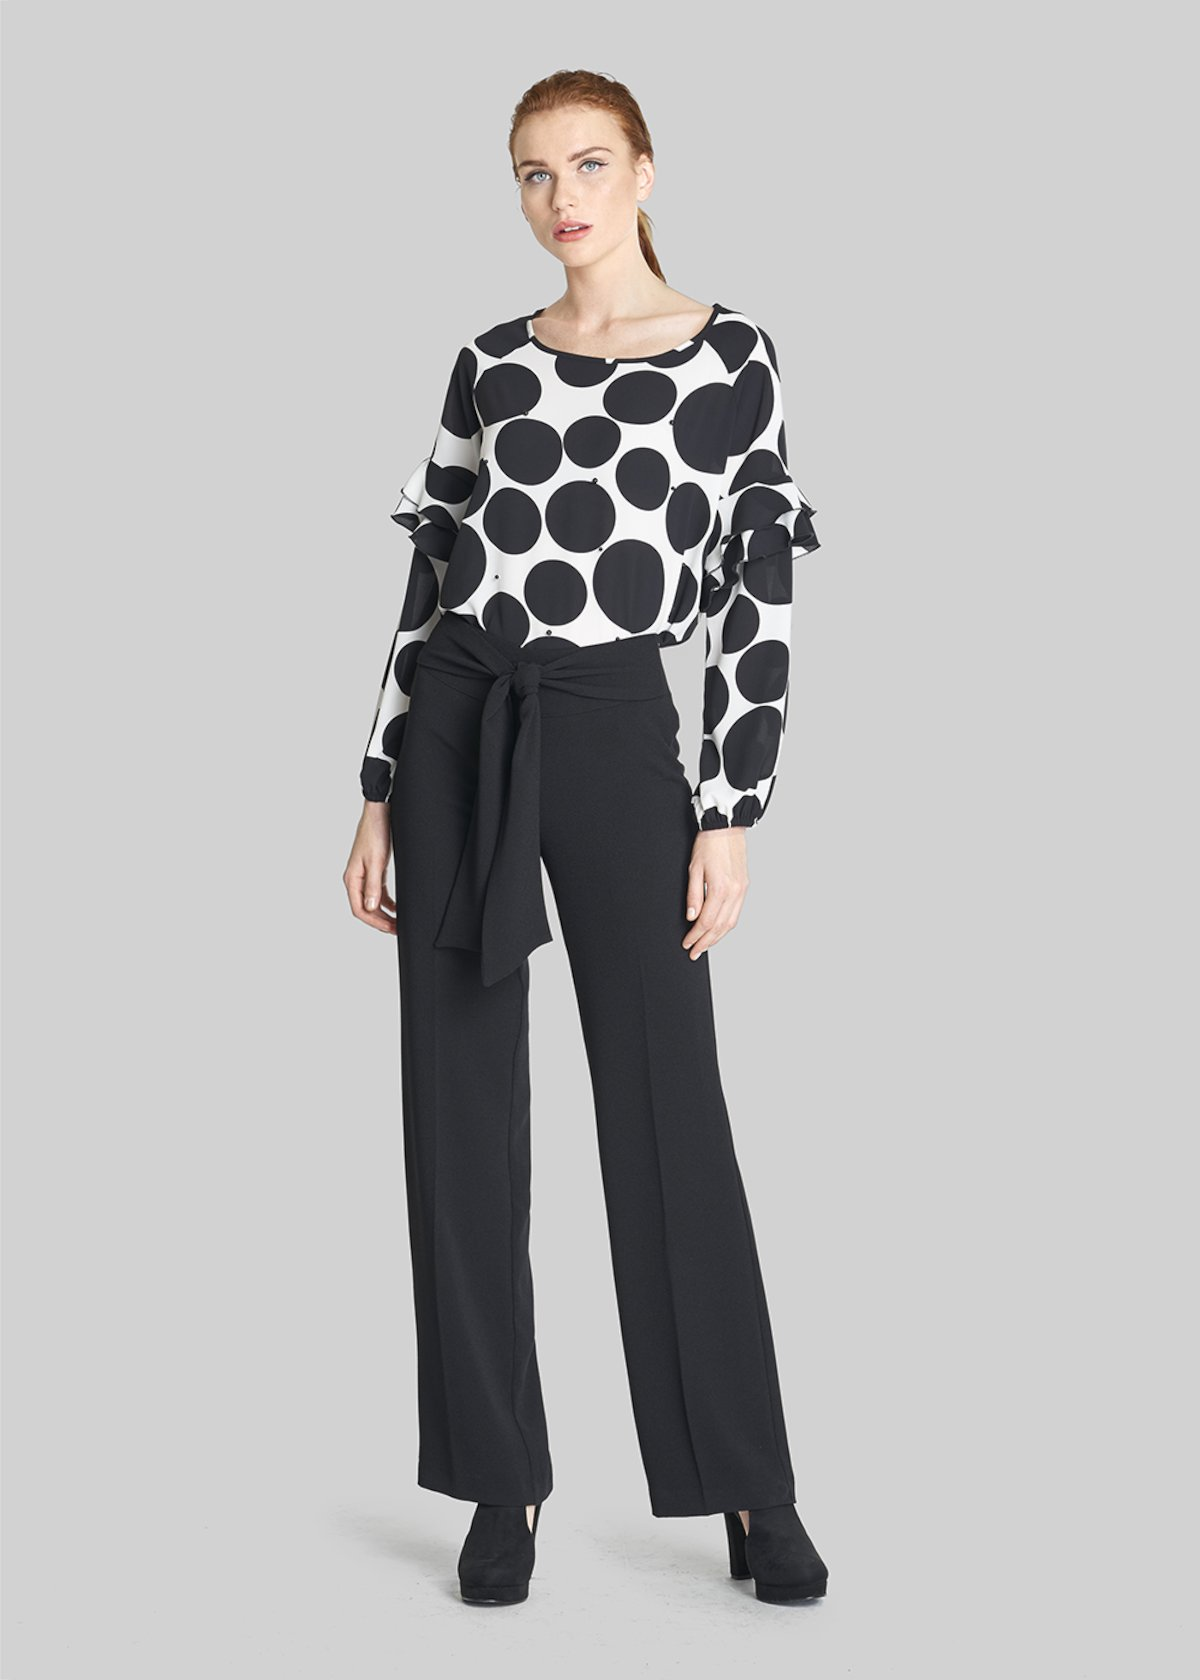 Catty Crepe blouse polka dots pattern with beads - Black White Fantasia